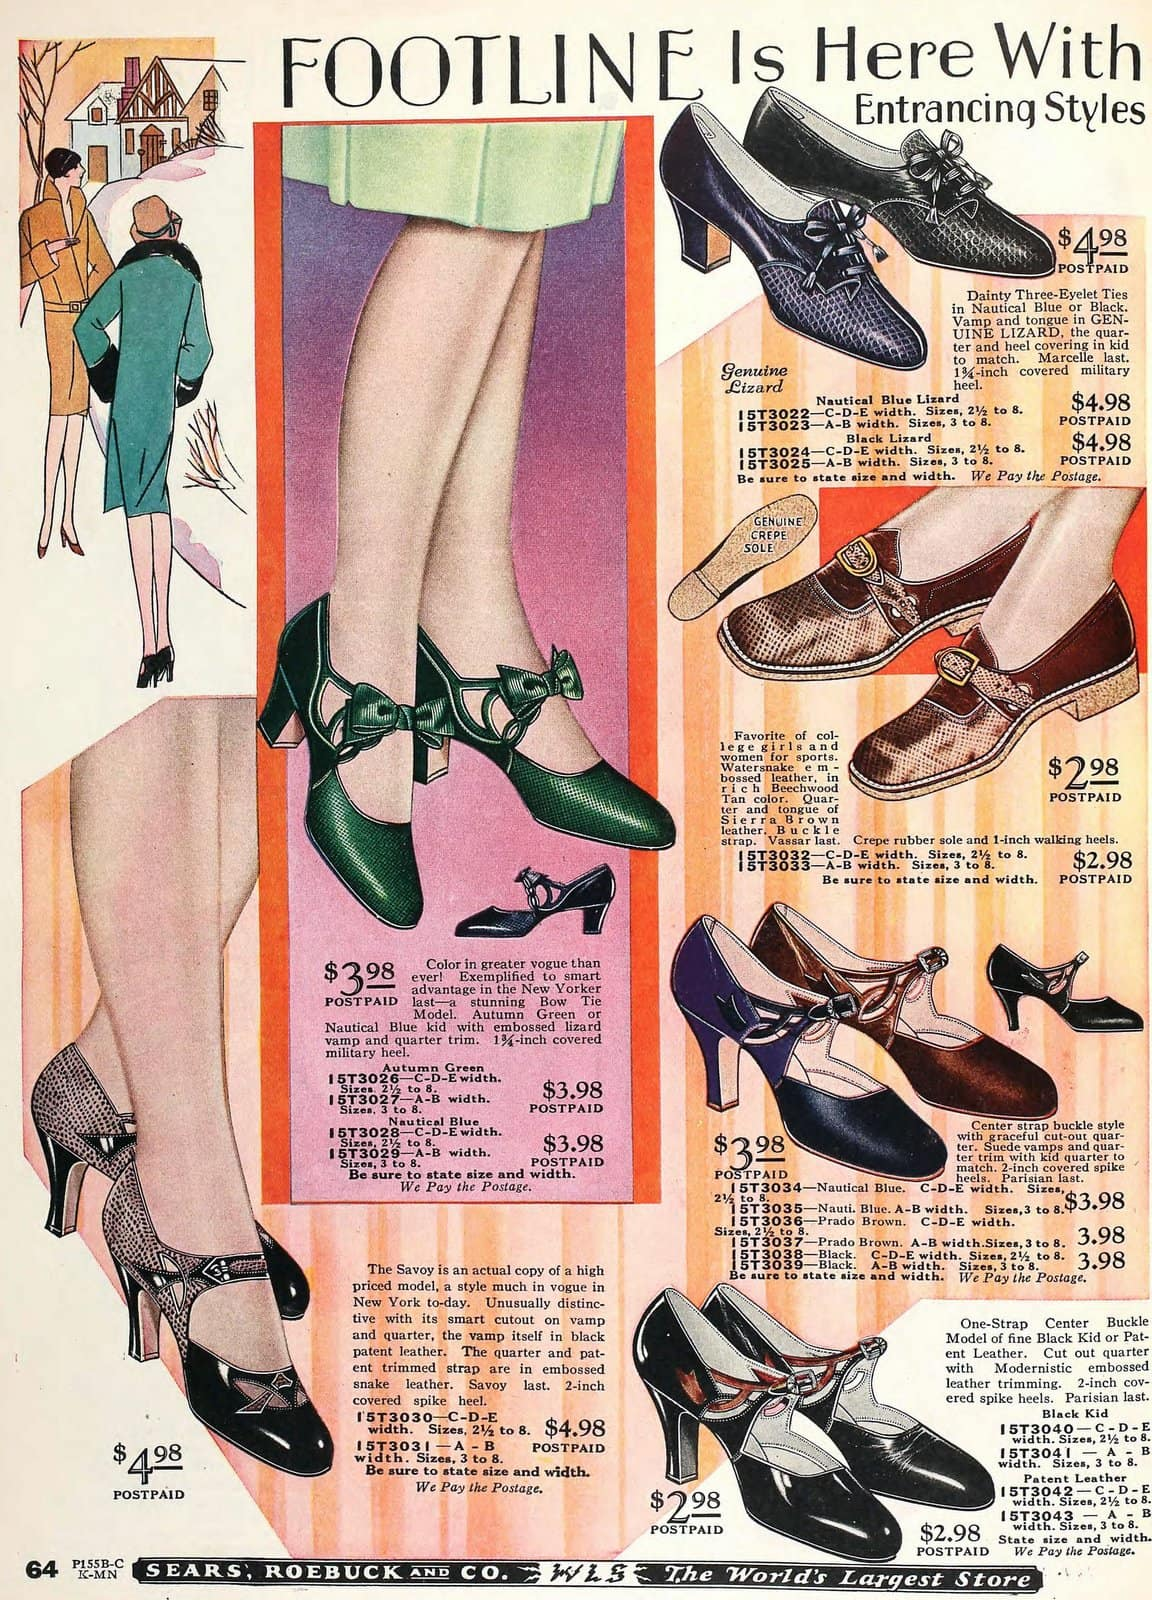 1920s shoes for women from 1929 (3)